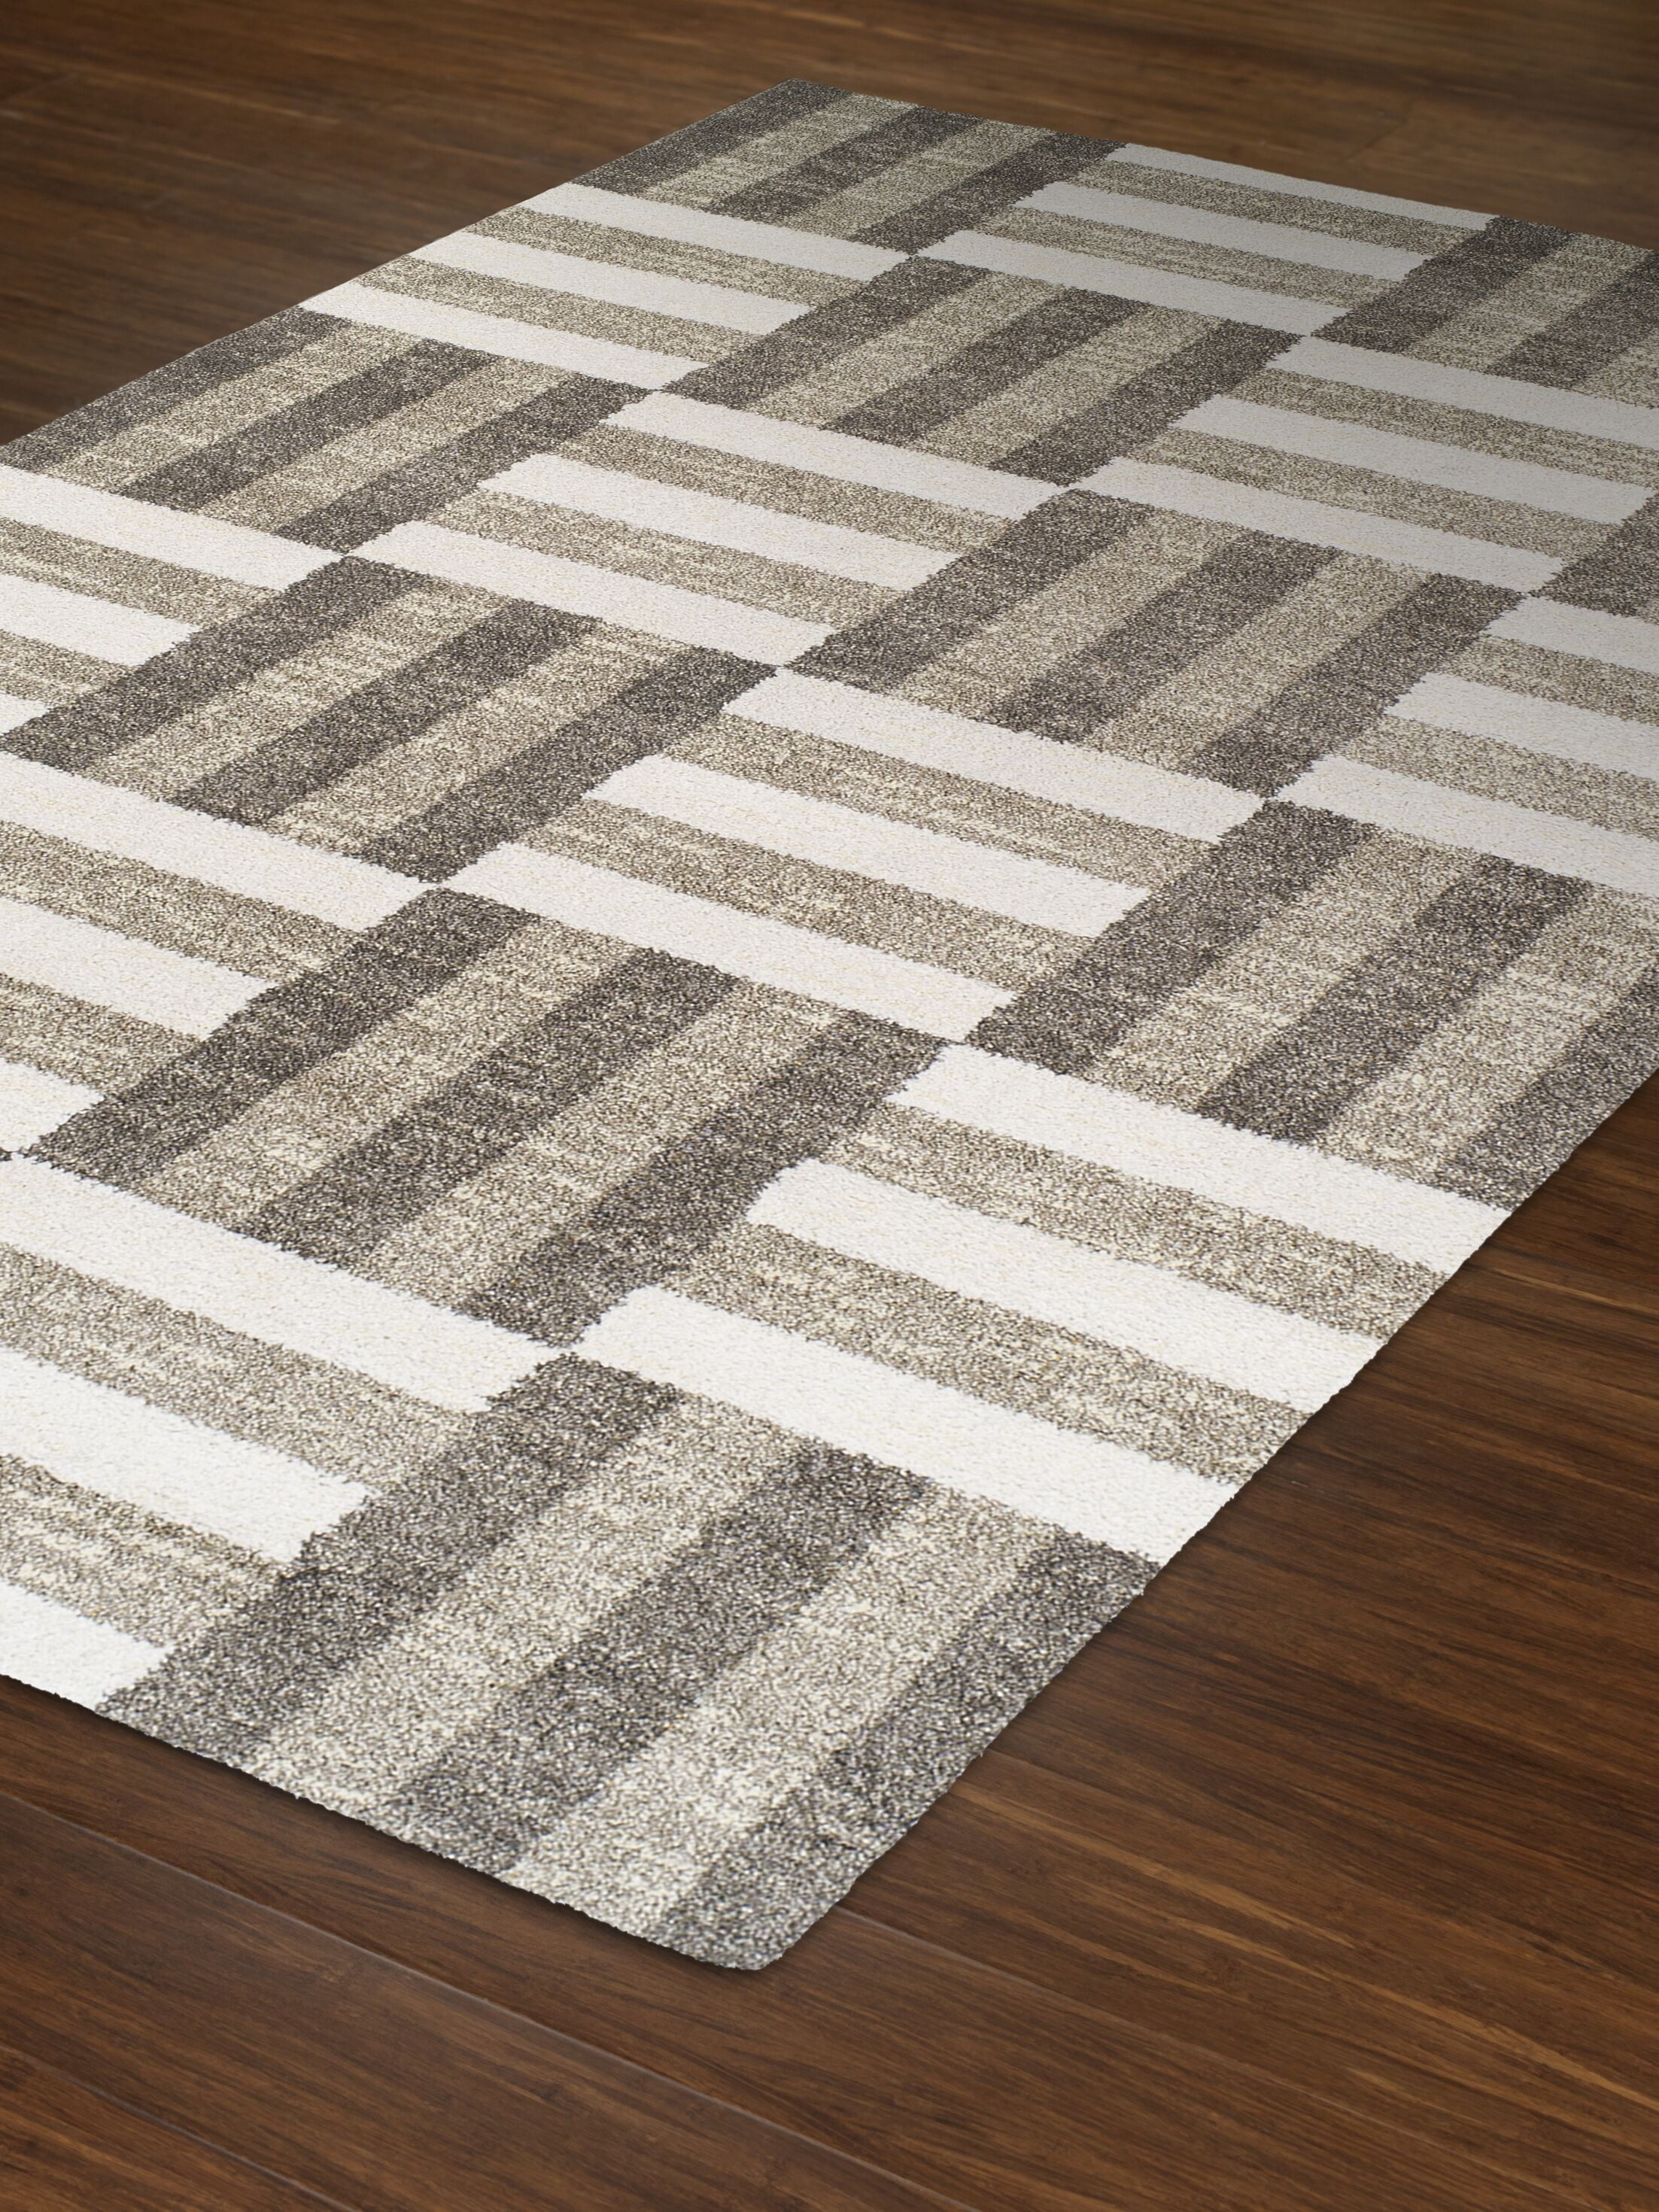 Omega Pewter Area Rug Rug Size: Rectangle 7'10